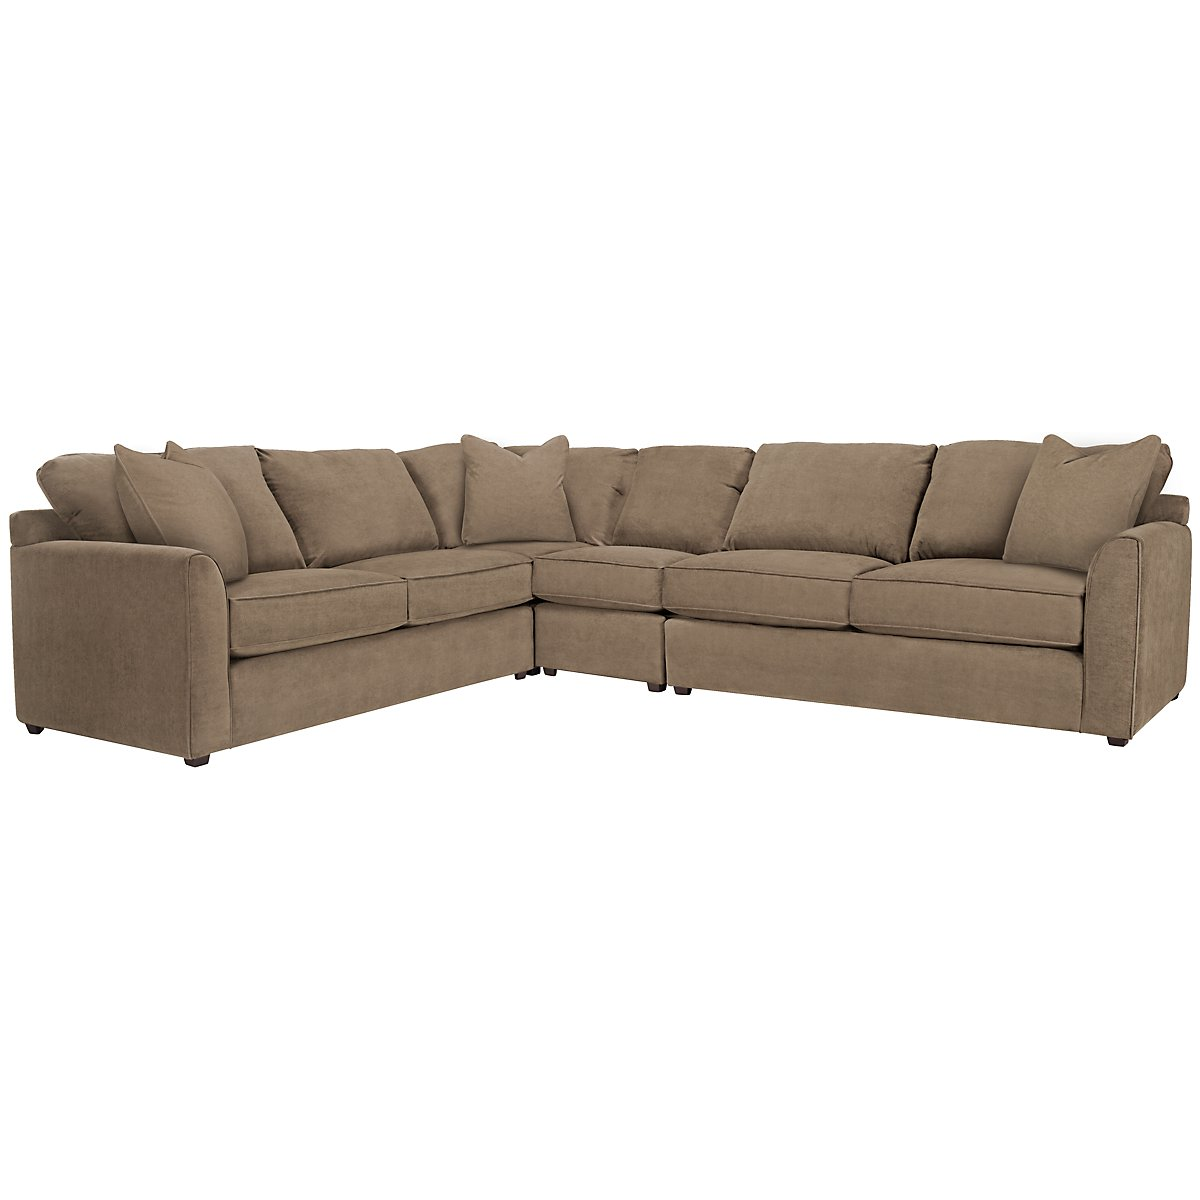 Express3 Light Brown Microfiber Large Two-Arm Sectional